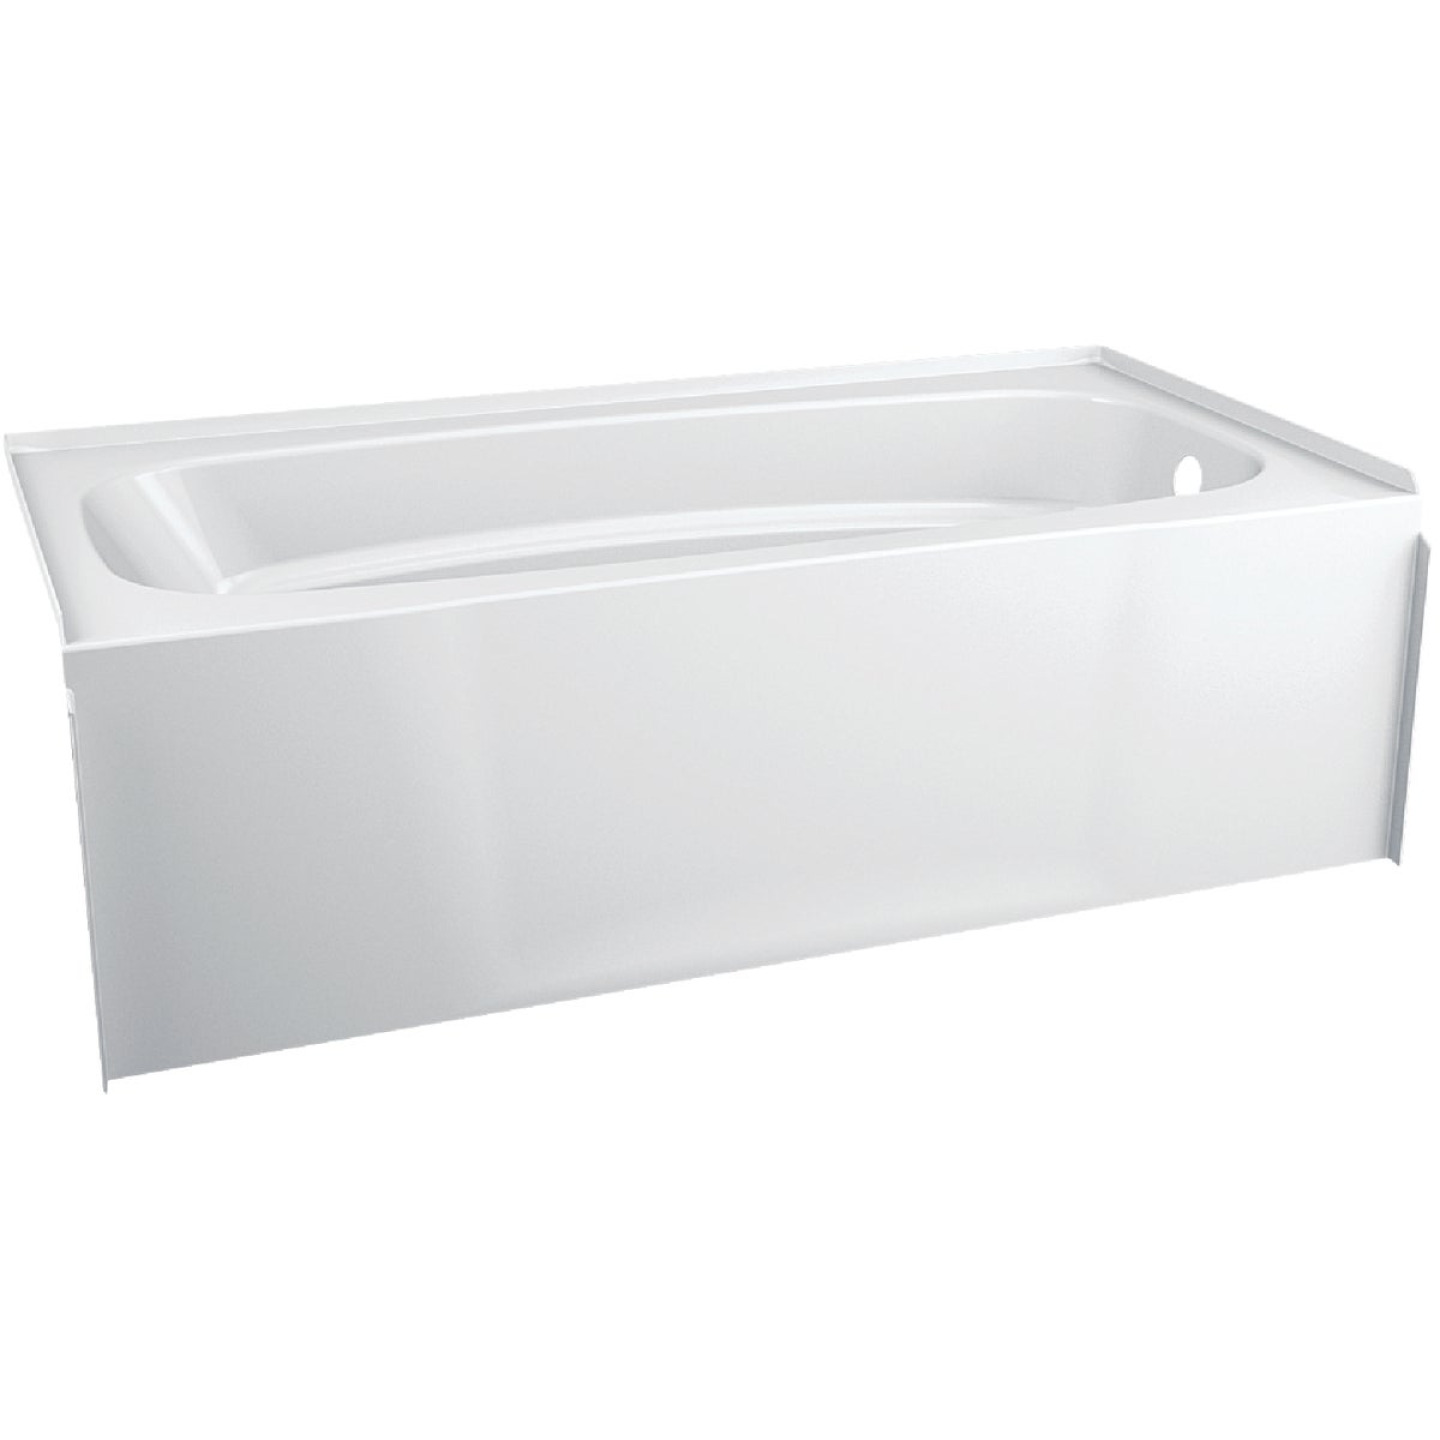 Delta Hycroft 60 In. L x 30 In. W Right Drain Bathtub in White Image 1